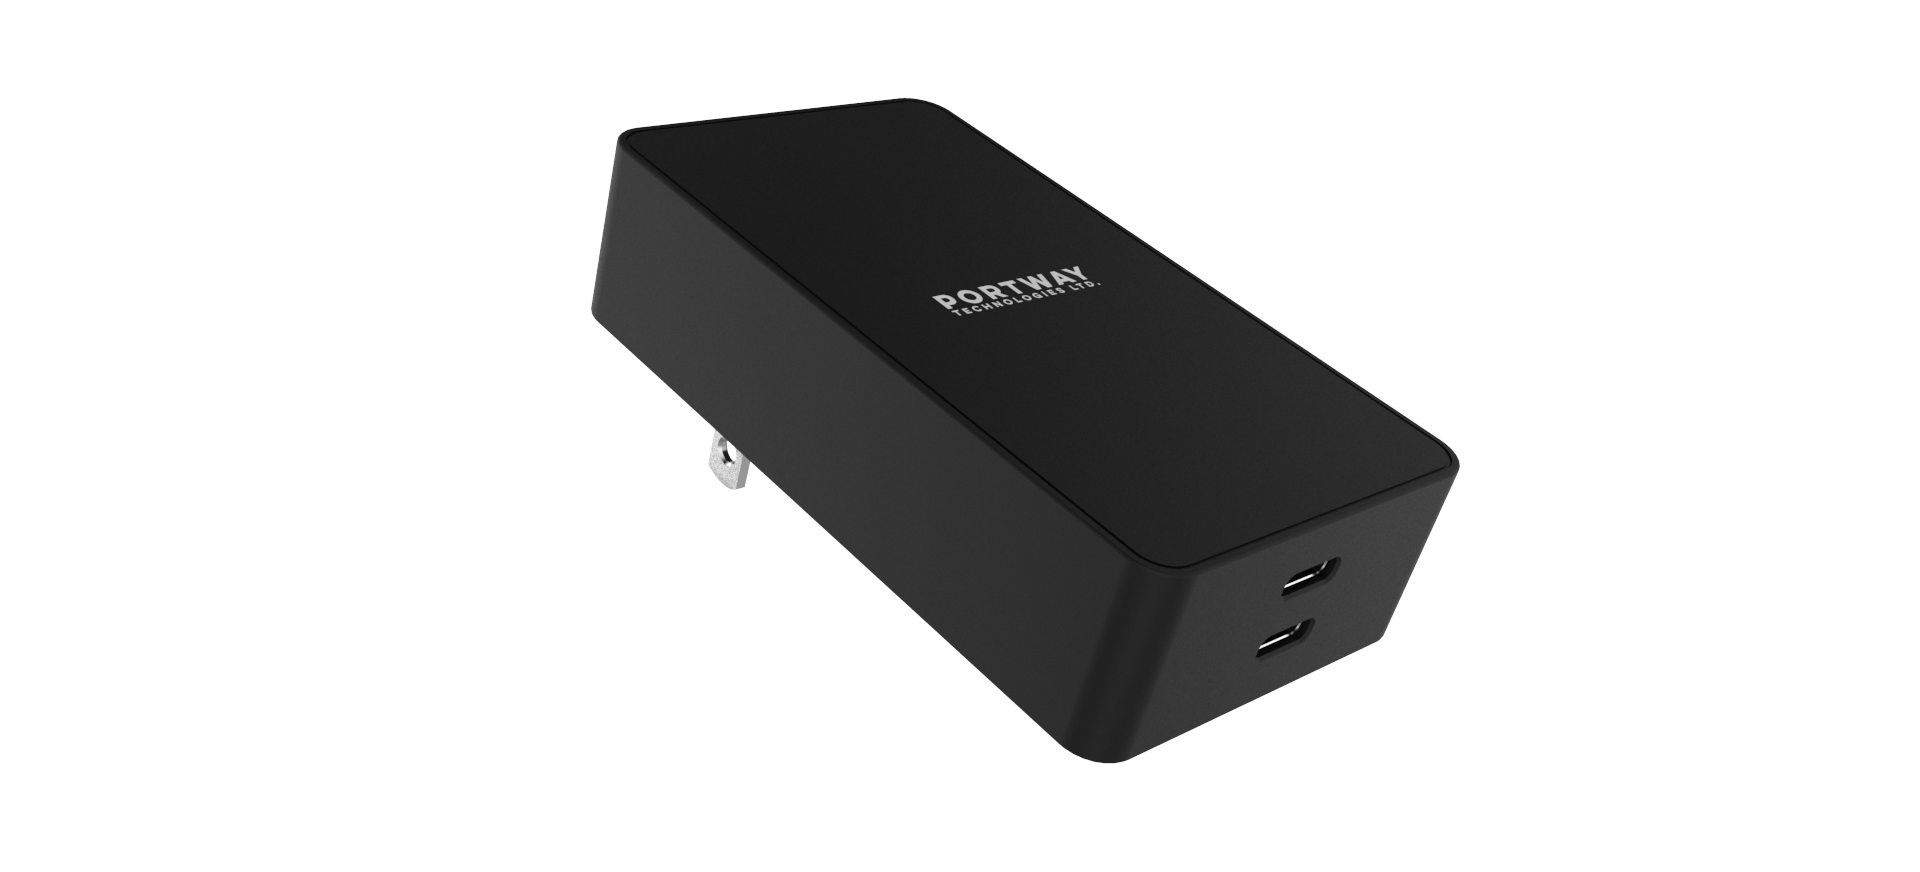 Dual Port 60W USB-Power Delivery - With two independent USB-C ports, this is the solution to power laptops and smartphones around the globe. Output one is a 45W USB-PD with PPS and QC4+ while output 2 maxes out at 5V/3A to fast charge most modern smartphones. And of course it takes advantage of our accessories system for changeable plug types and AC cables.